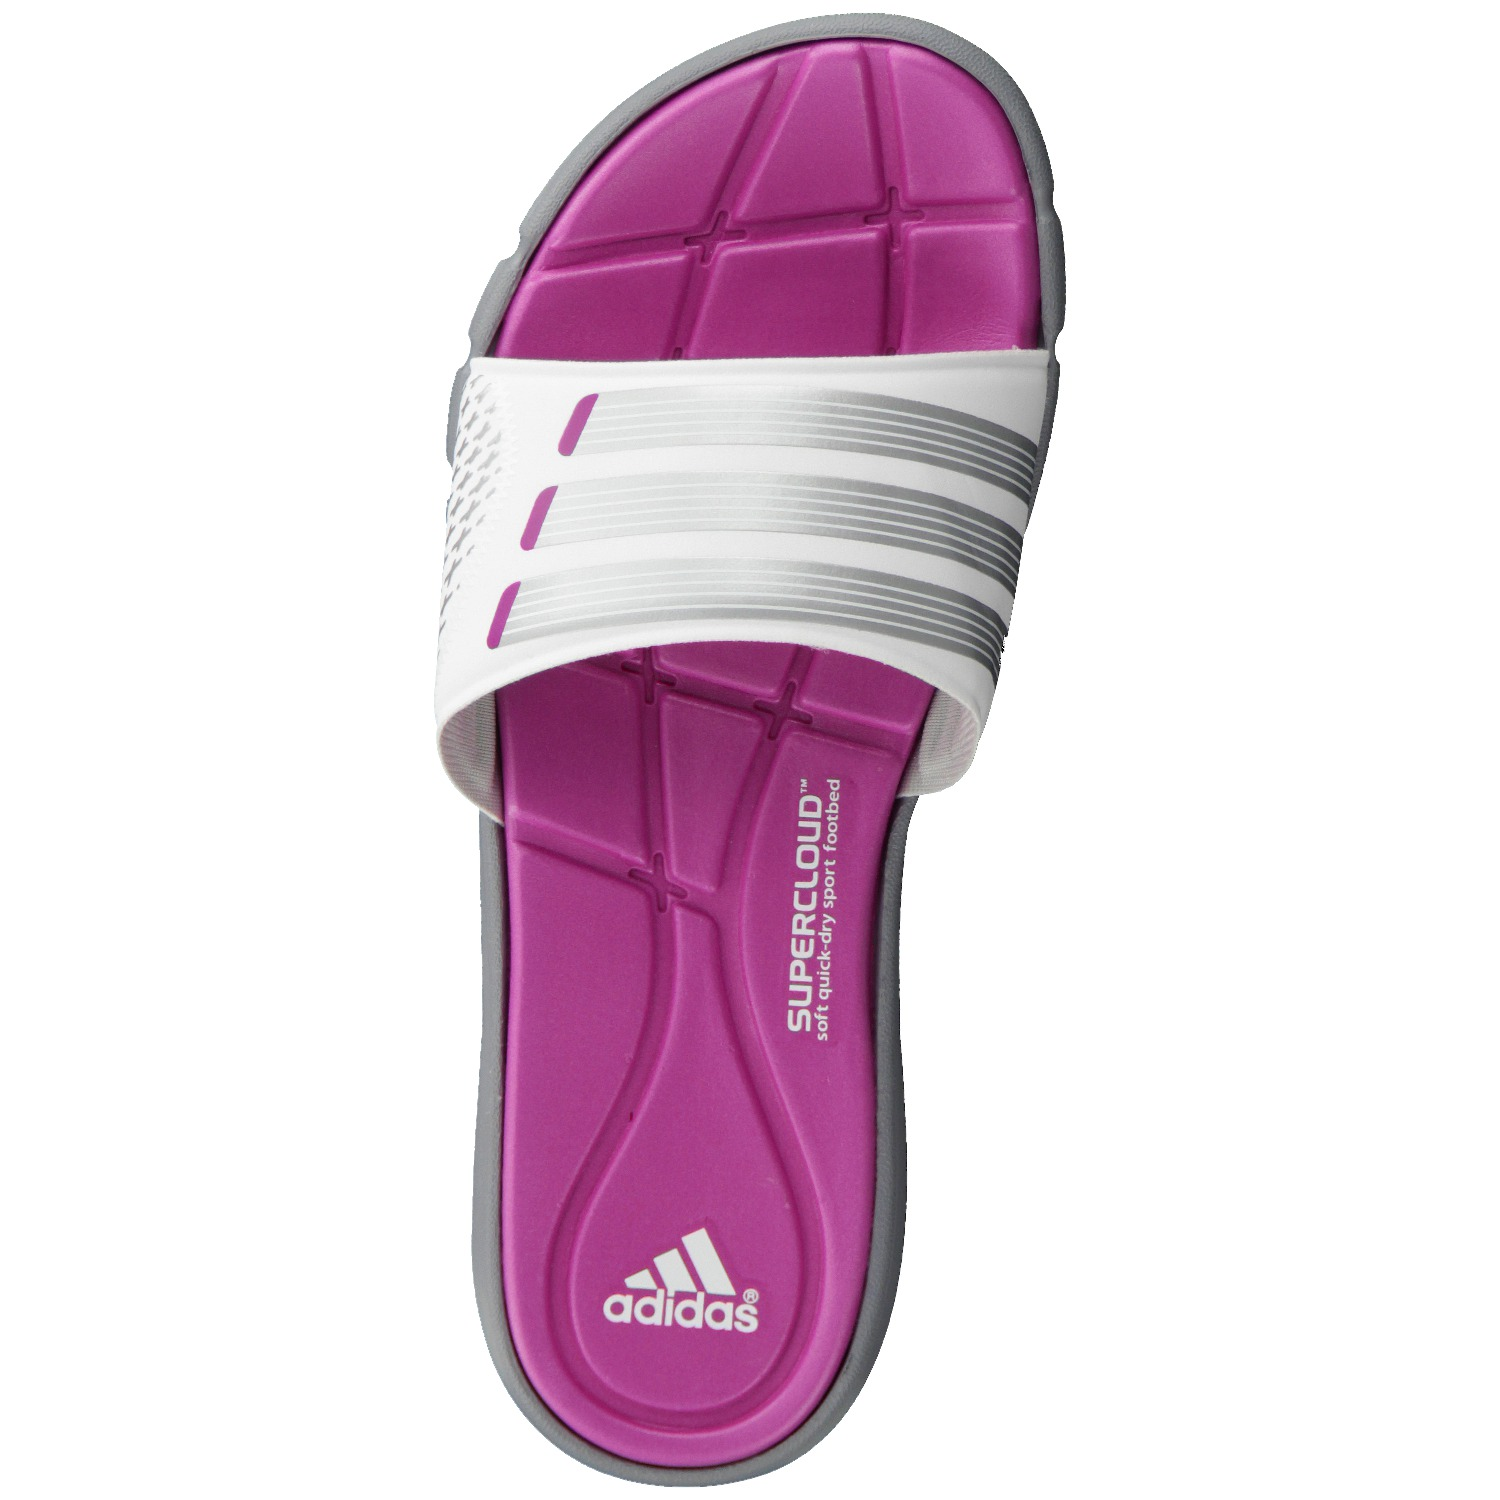 pin pink adidas slides on pinterest. Black Bedroom Furniture Sets. Home Design Ideas